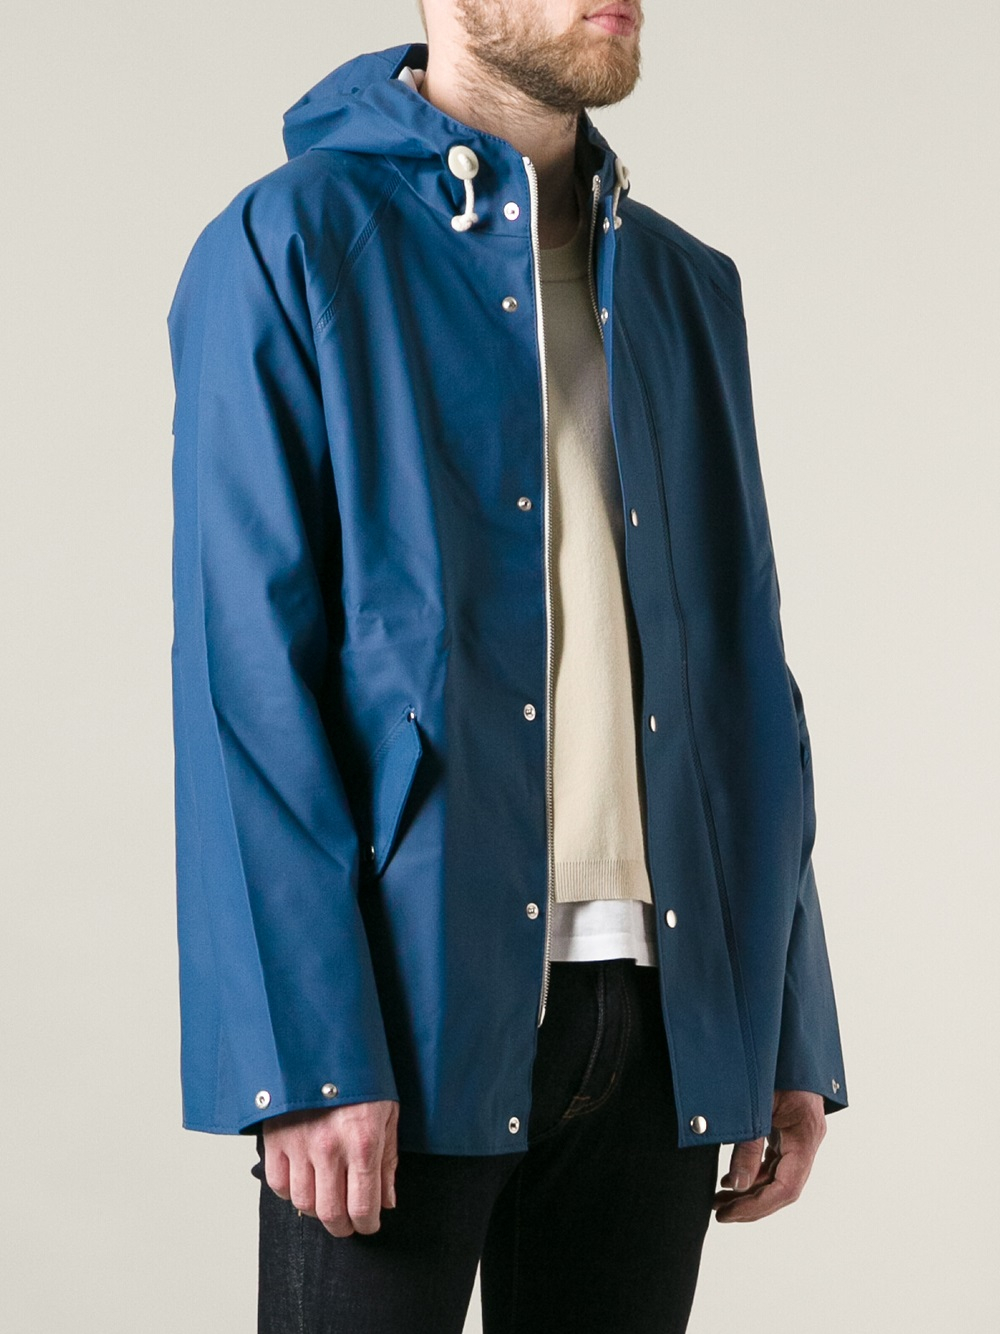 Lyst - Norse Projects Elka Jacket in Blue for Men e907a23e5127